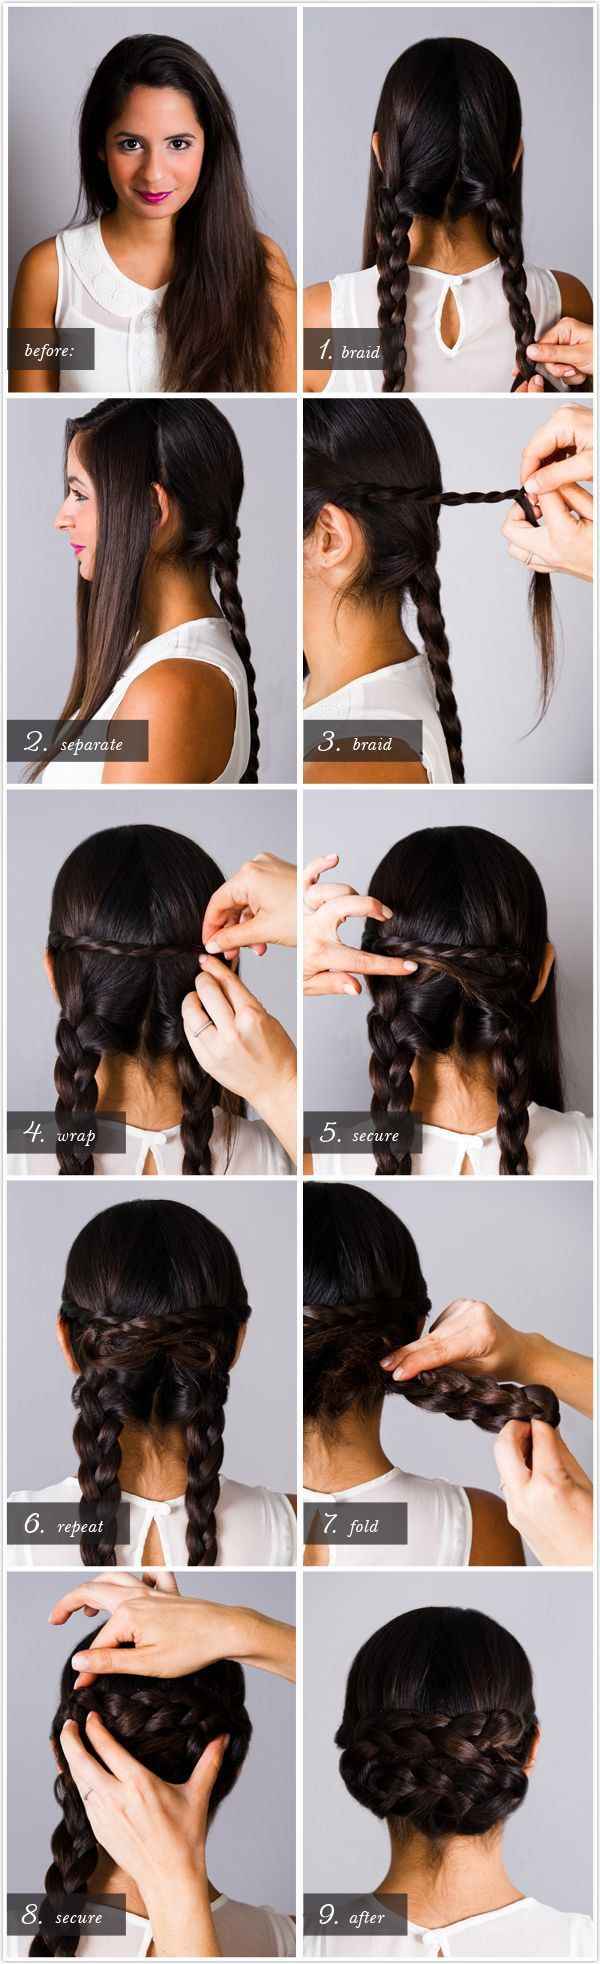 21 Best Hairstyles N Accessories Images On Pinterest Make Up Looks